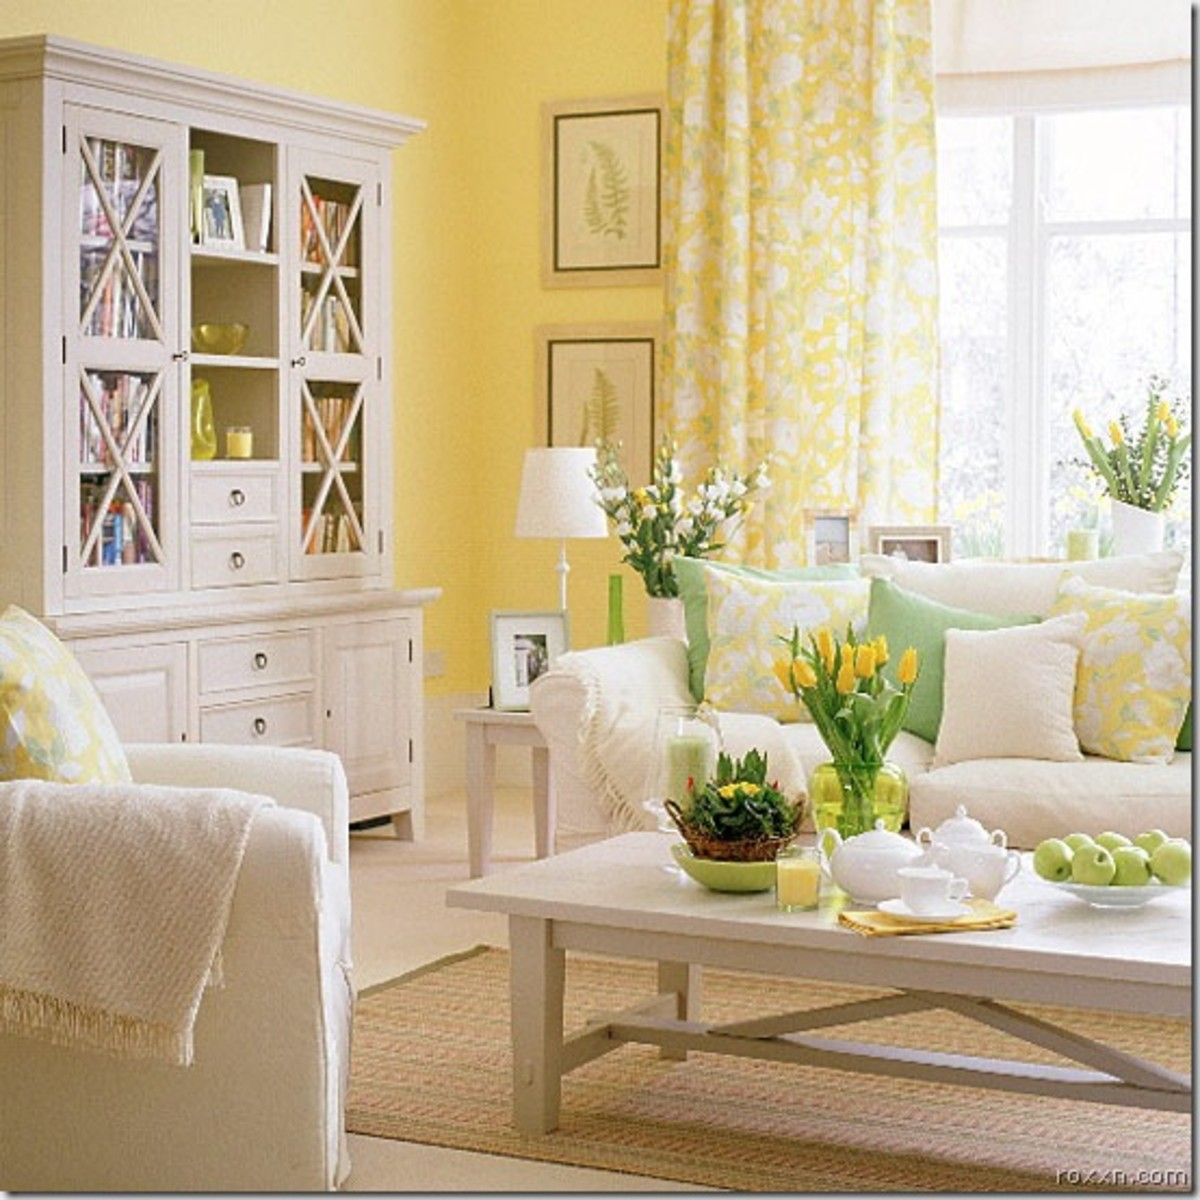 Interior Decorating - What Paint Color Choices and Schemes for Your ...